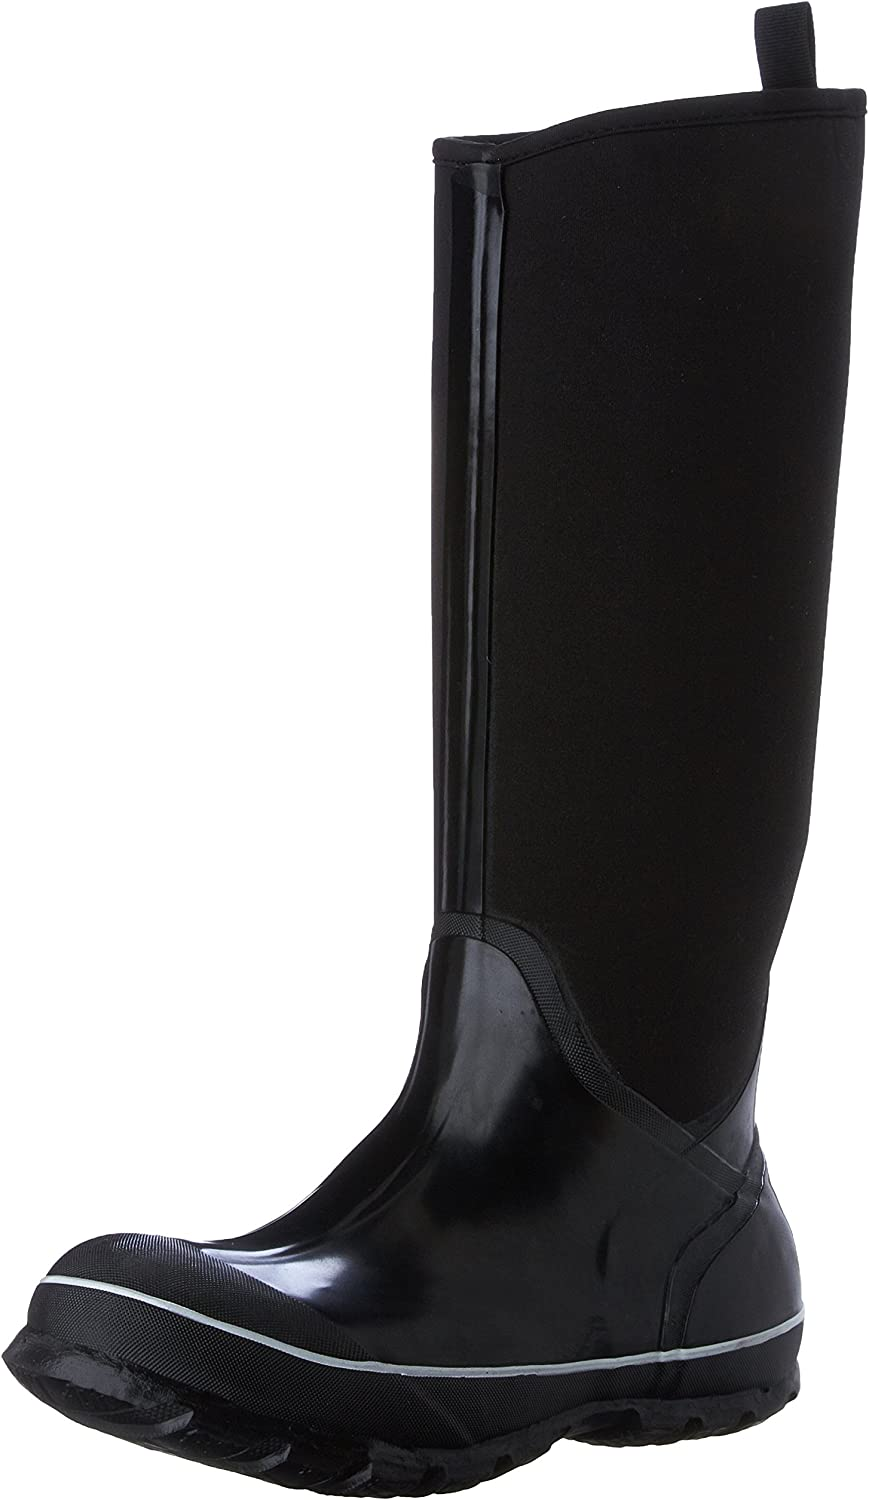 Baffin Meltwater – Women's Waterproof/Insulated, Tall Height Pull-On Rubber Boot